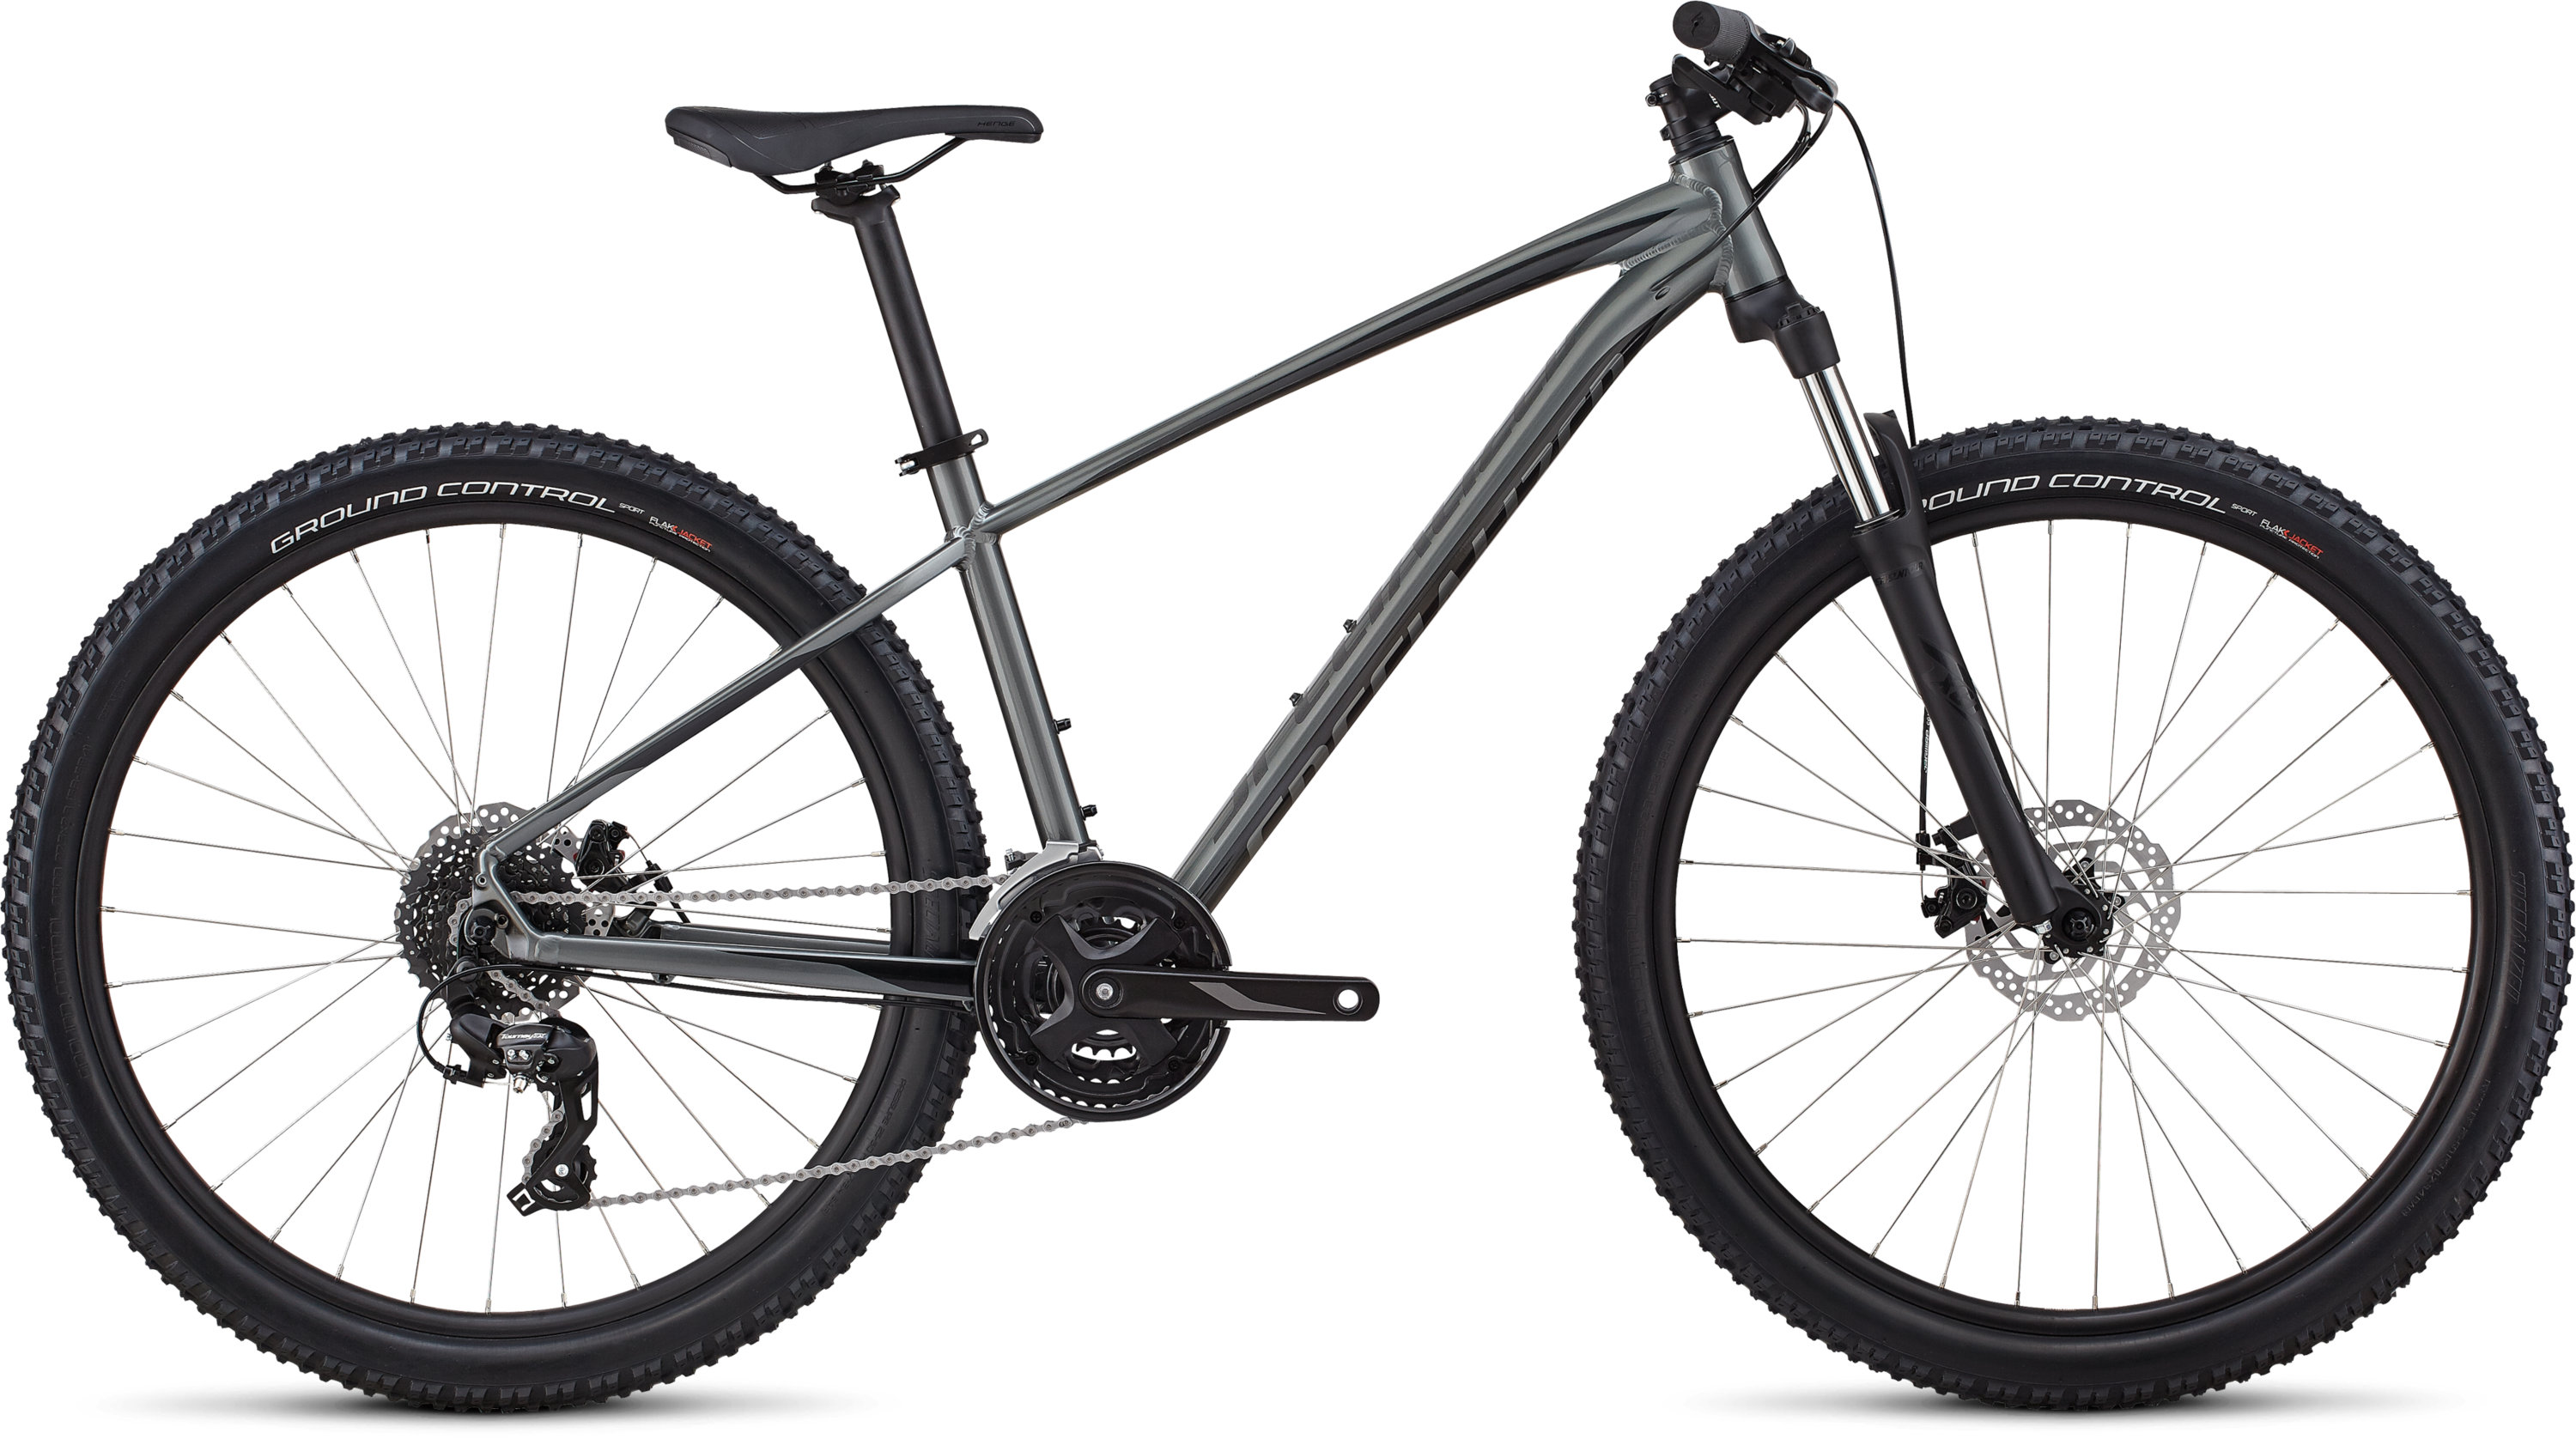 Specialized Men´s Pitch 27.5 SATIN CHARCOAL / BLACK S - Specialized Men´s Pitch 27.5 SATIN CHARCOAL / BLACK S